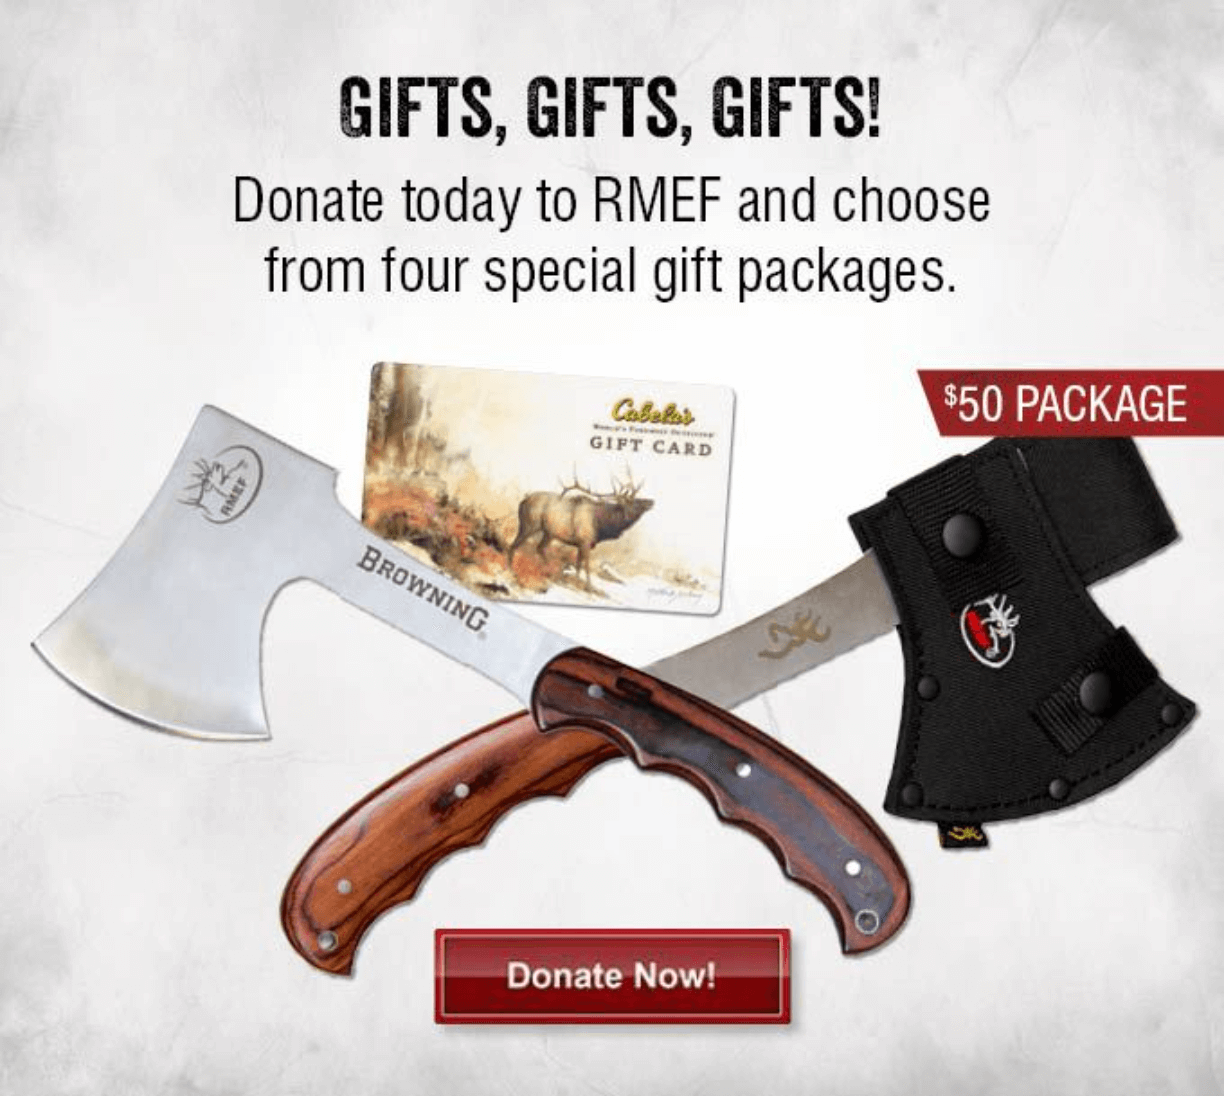 RMEF example of dynamic content in emails